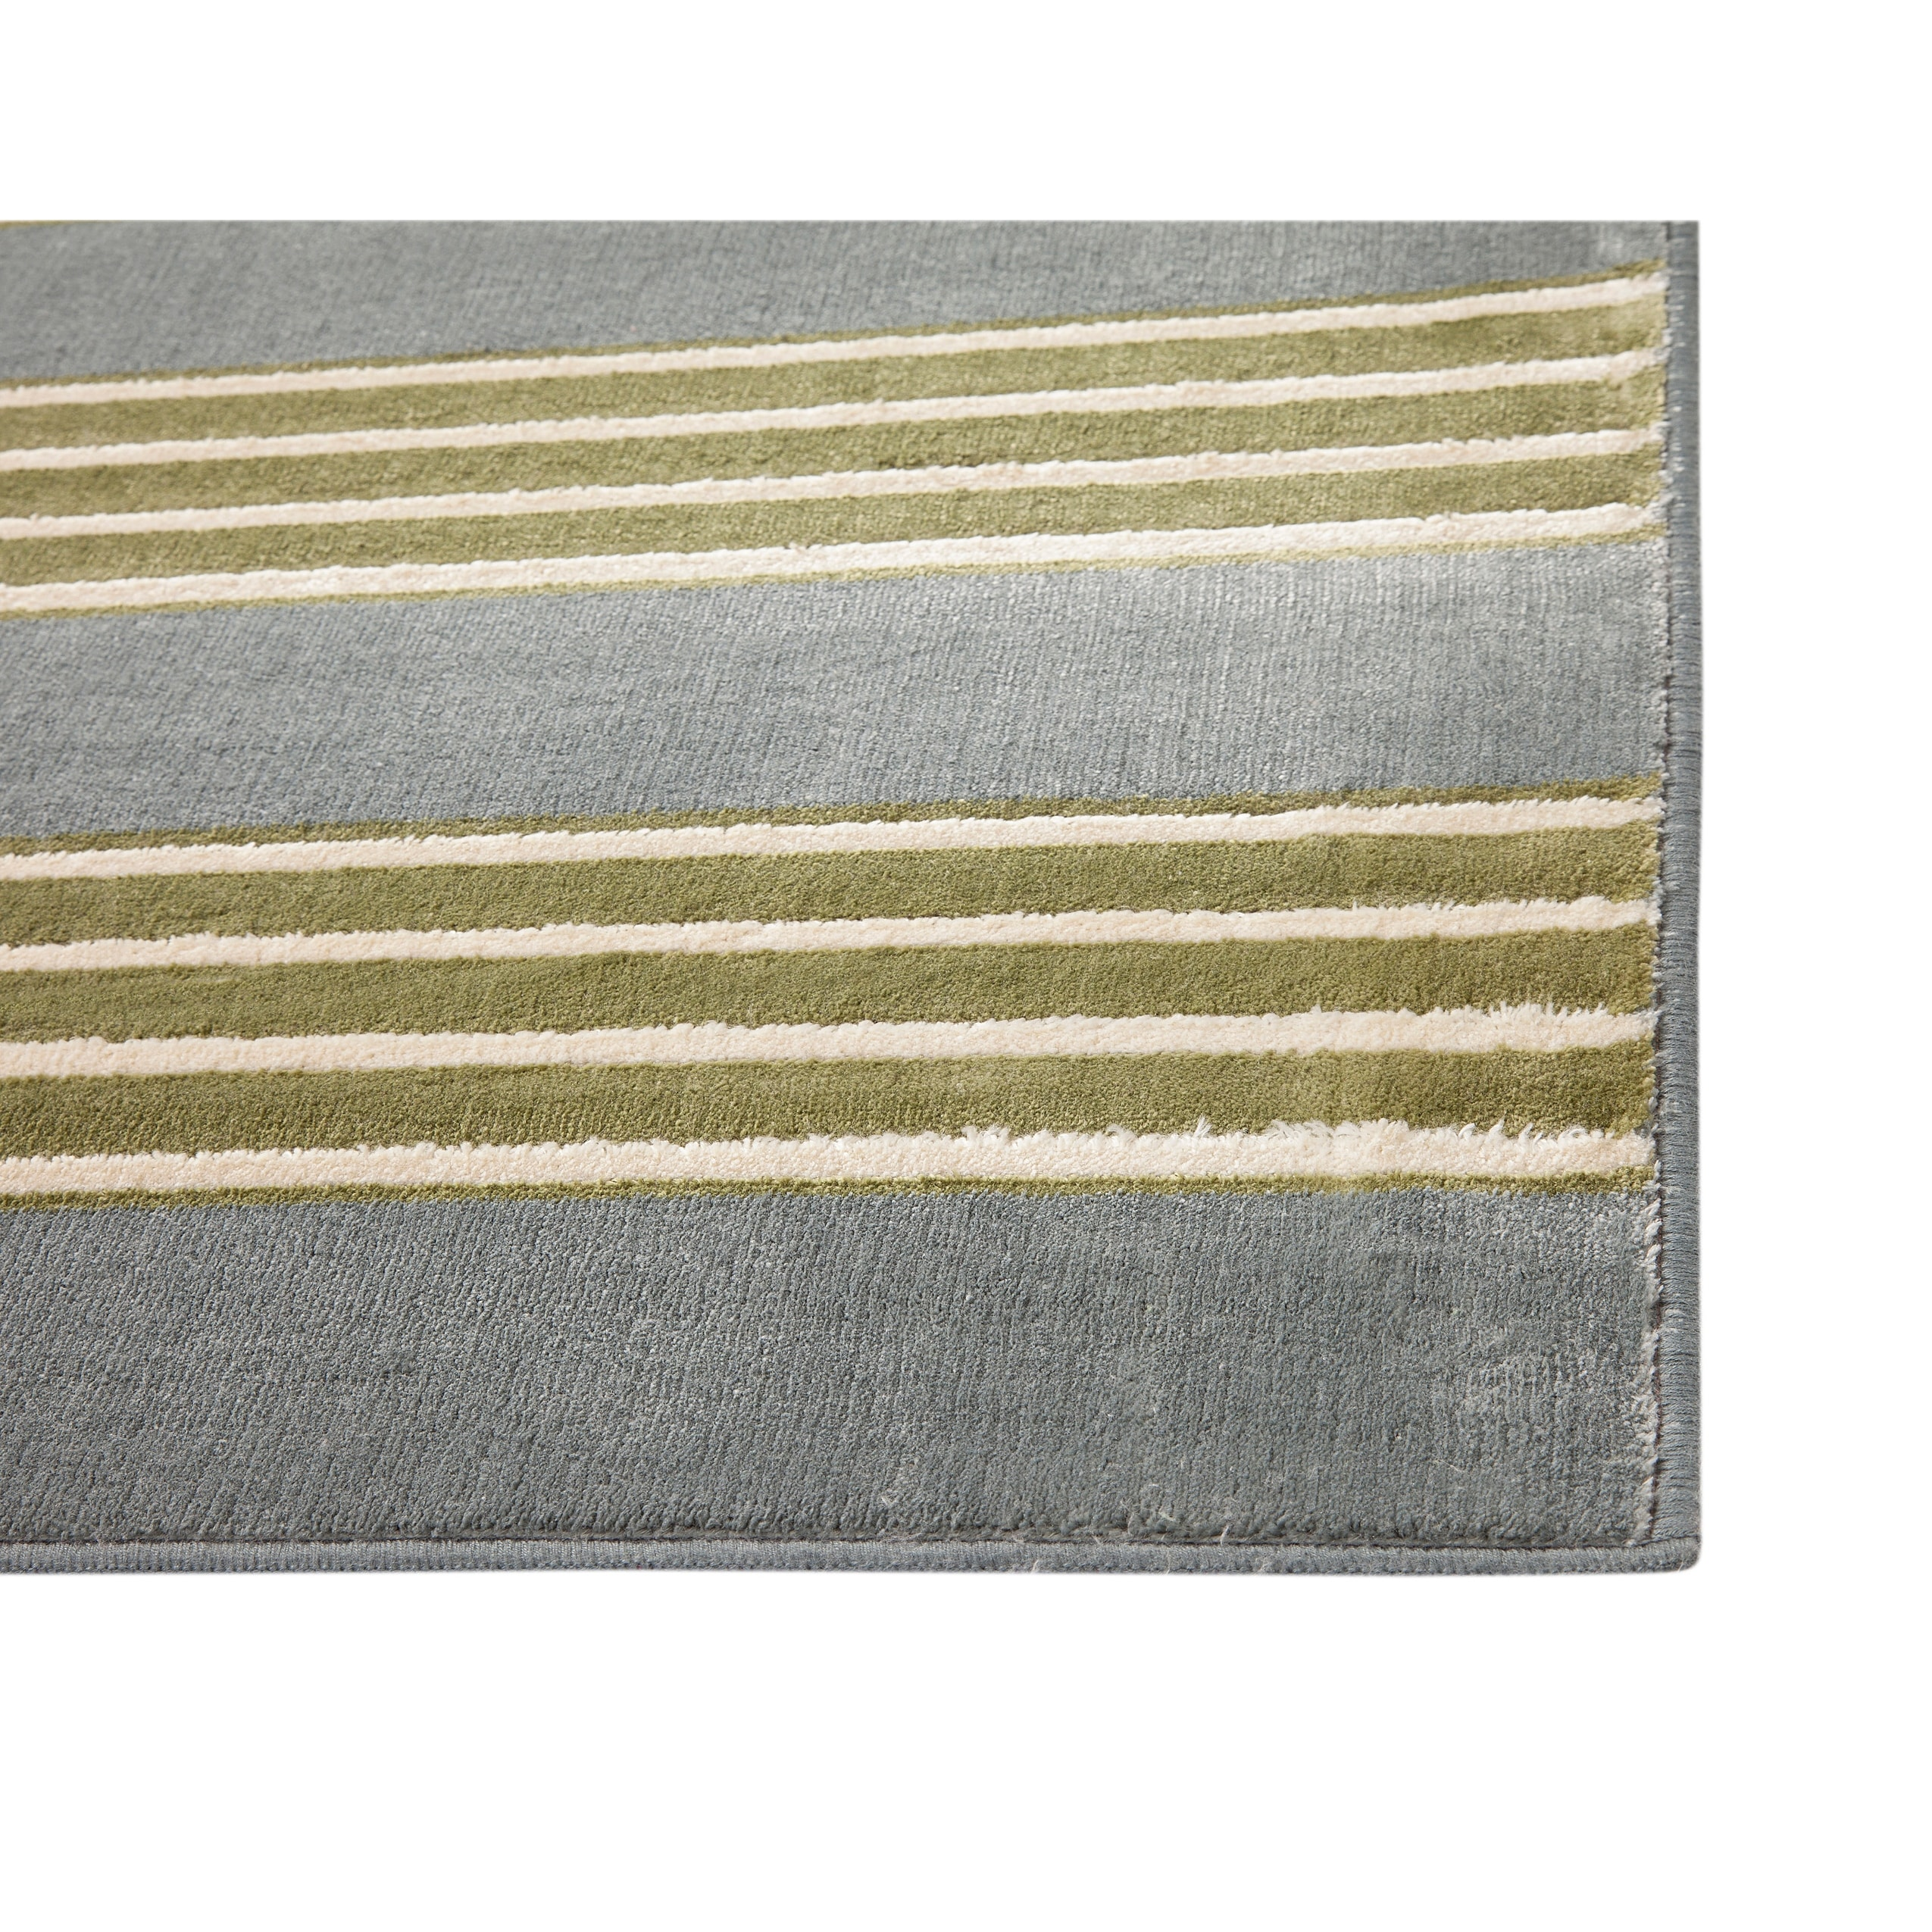 Spencer Striped Power Loom Viscose Area Rug By Greyson Living On Sale Overstock 11483886